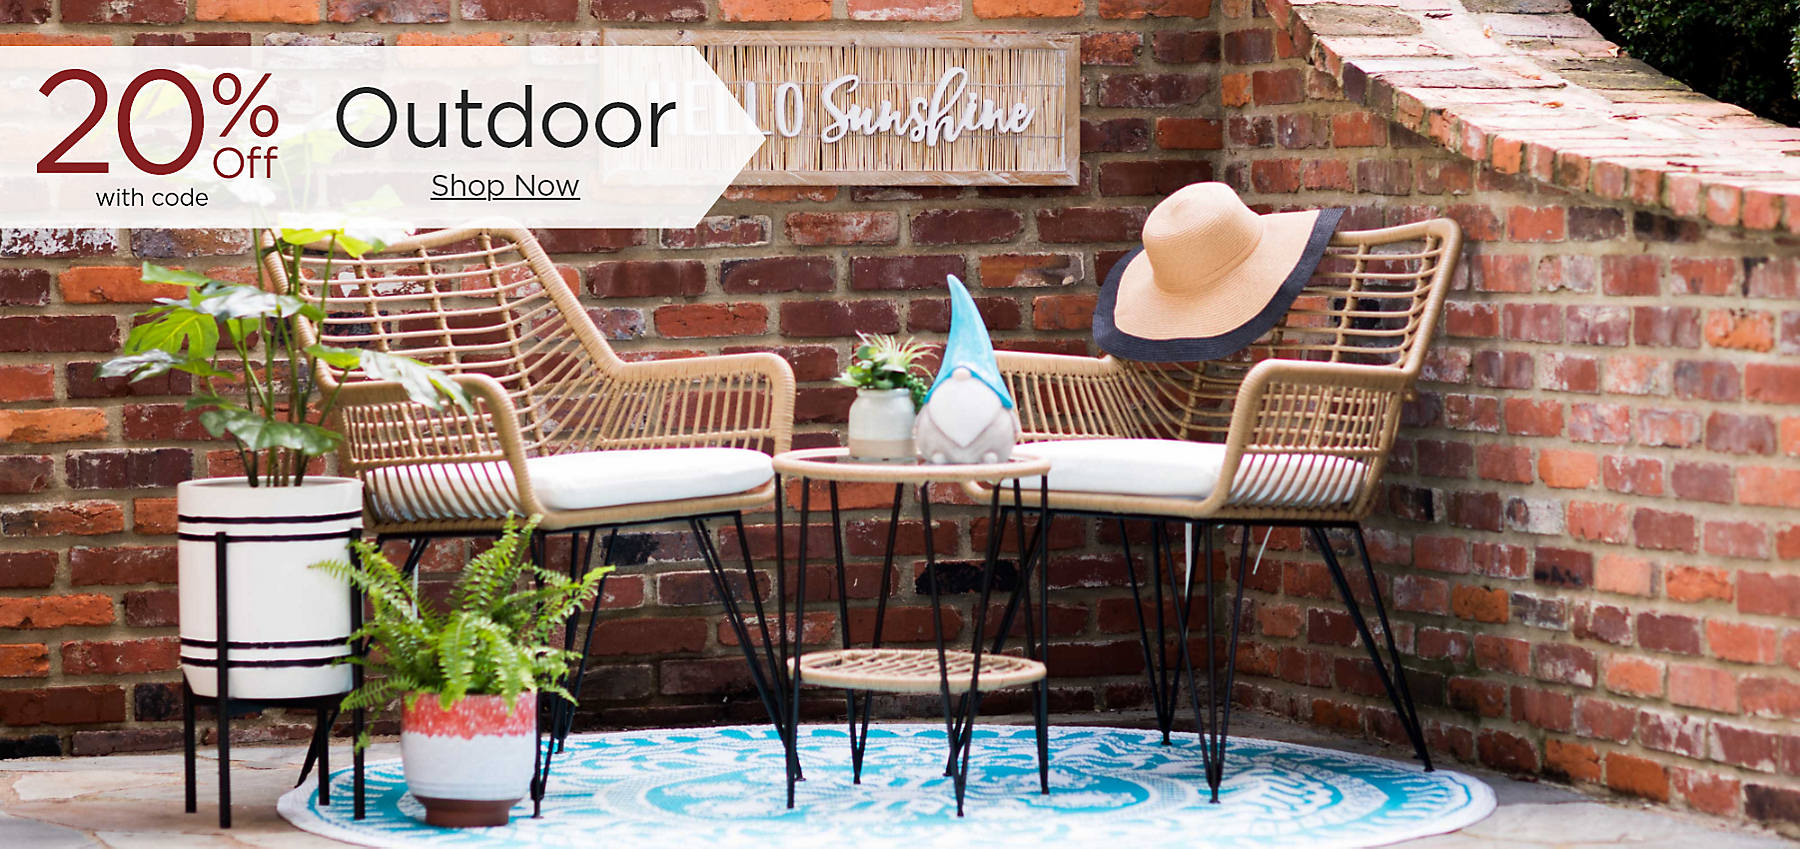 Outdoor 20% Off with code Shop Now